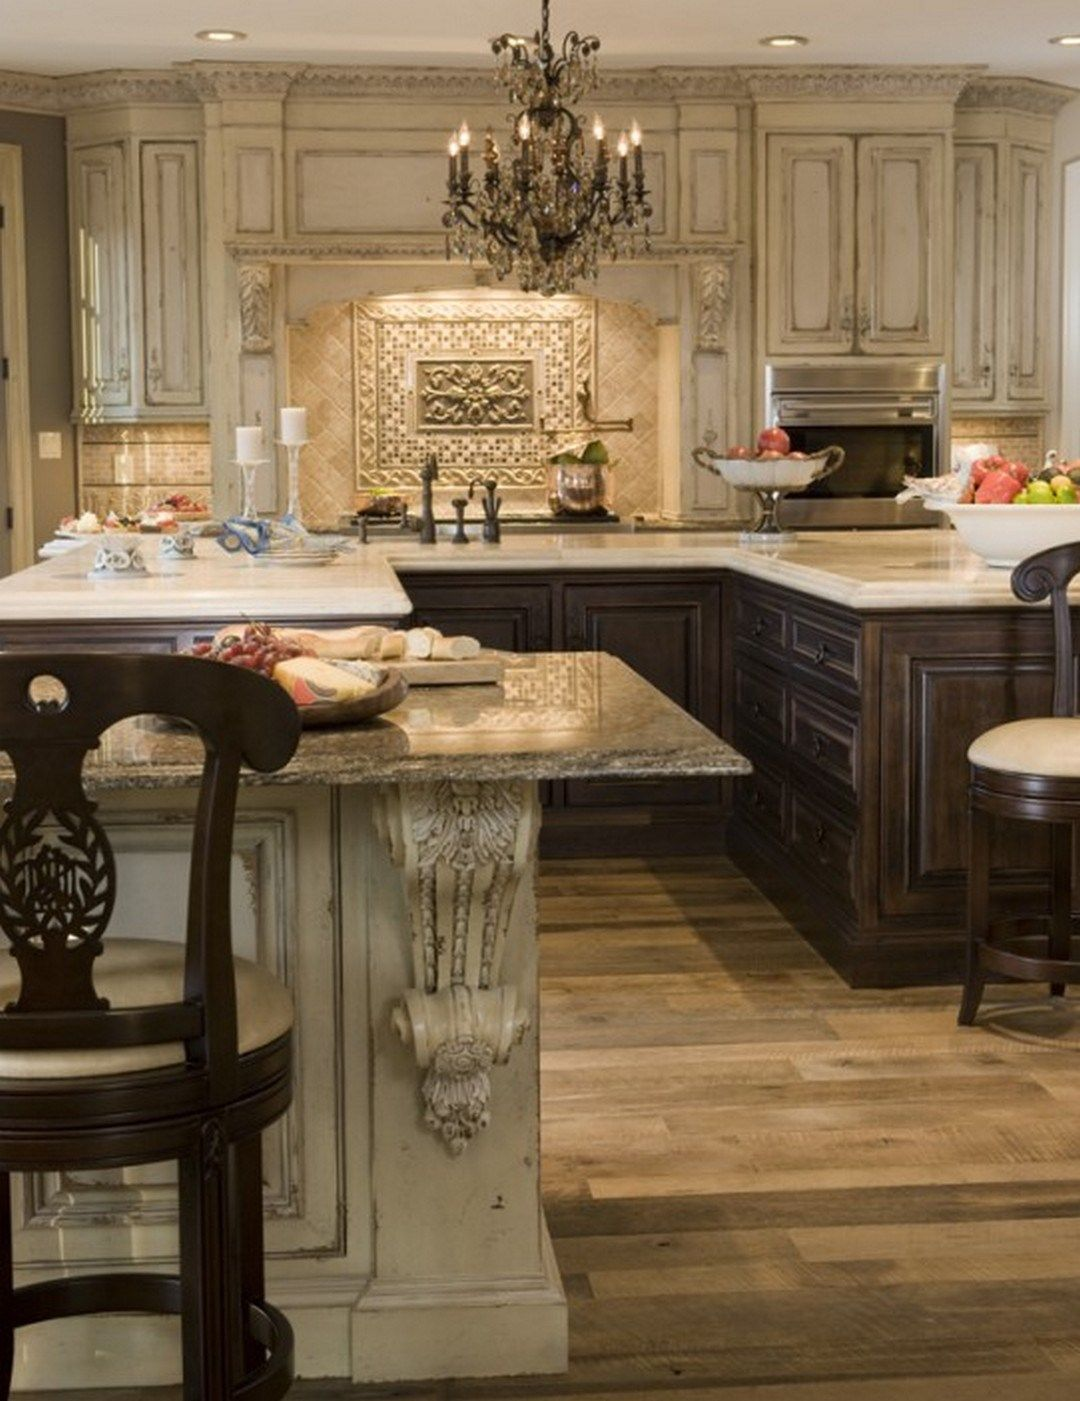 99 French Country Kitchen Modern Design Ideas 52  Harvey House Gorgeous French Kitchen Design Review